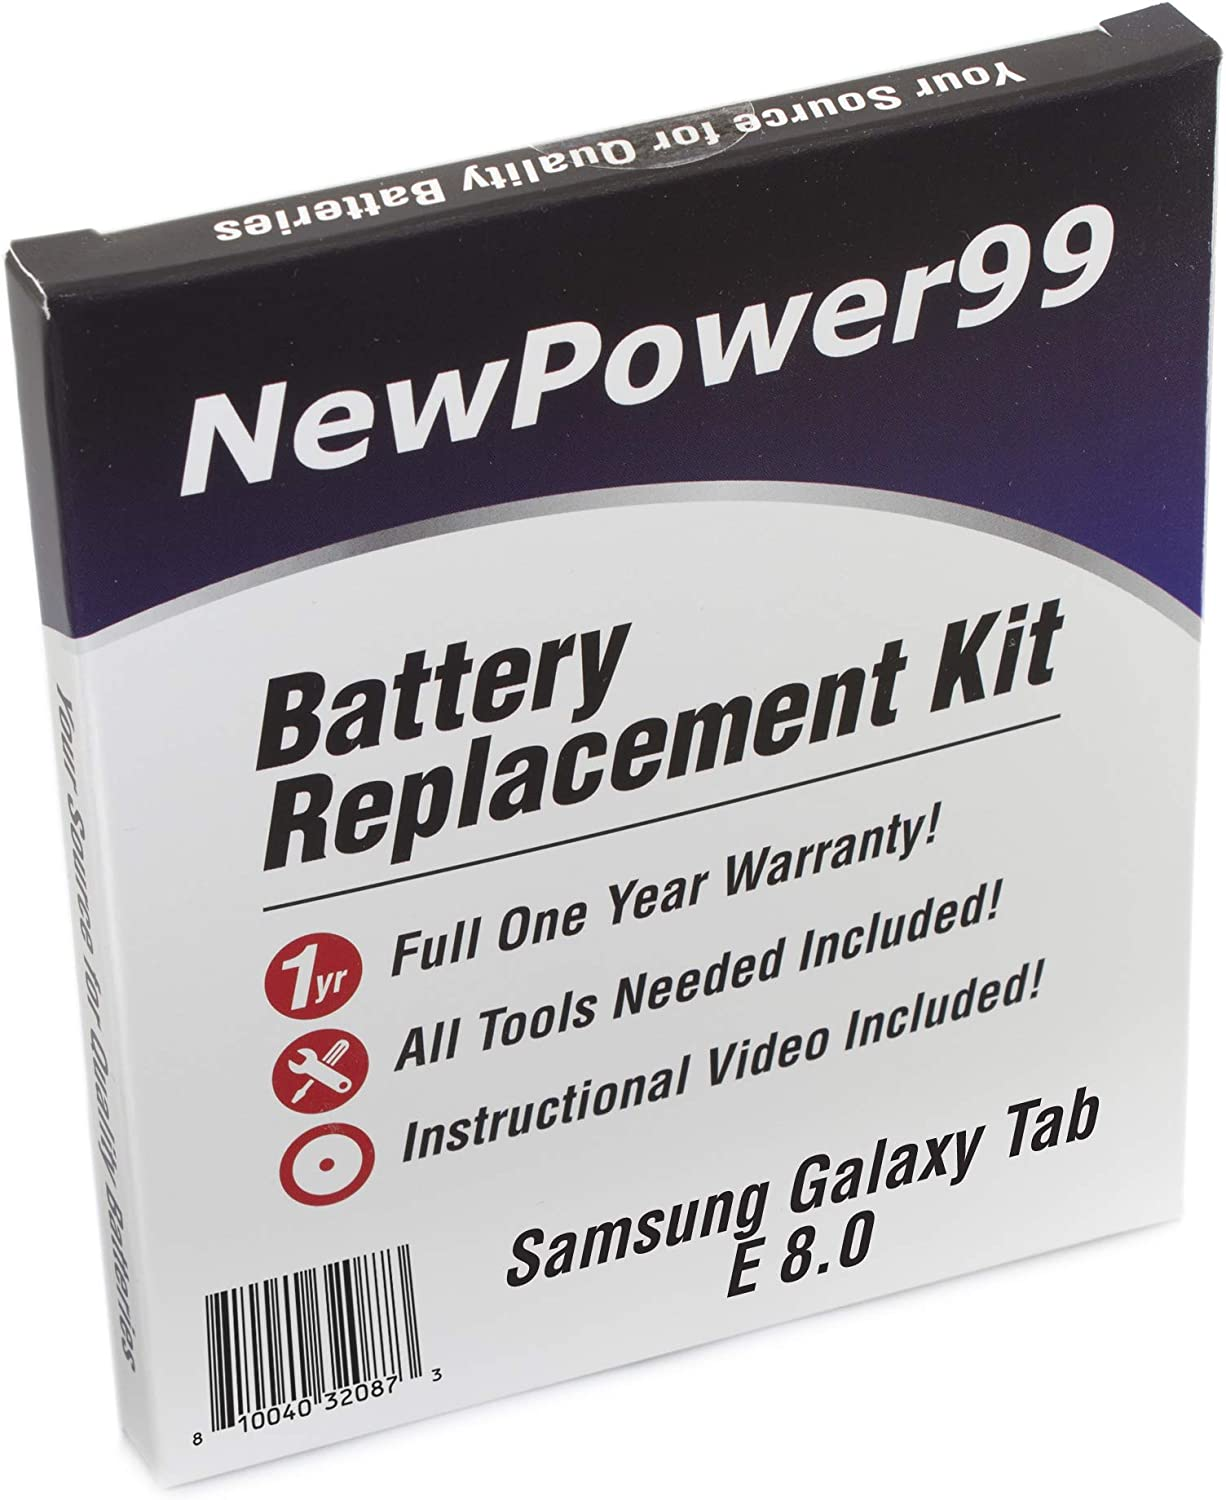 SM-T377 with Tools Battery from NewPower99 Battery Kit for Samsung Galaxy Tab E 8.0 SM-T375 How-to Video